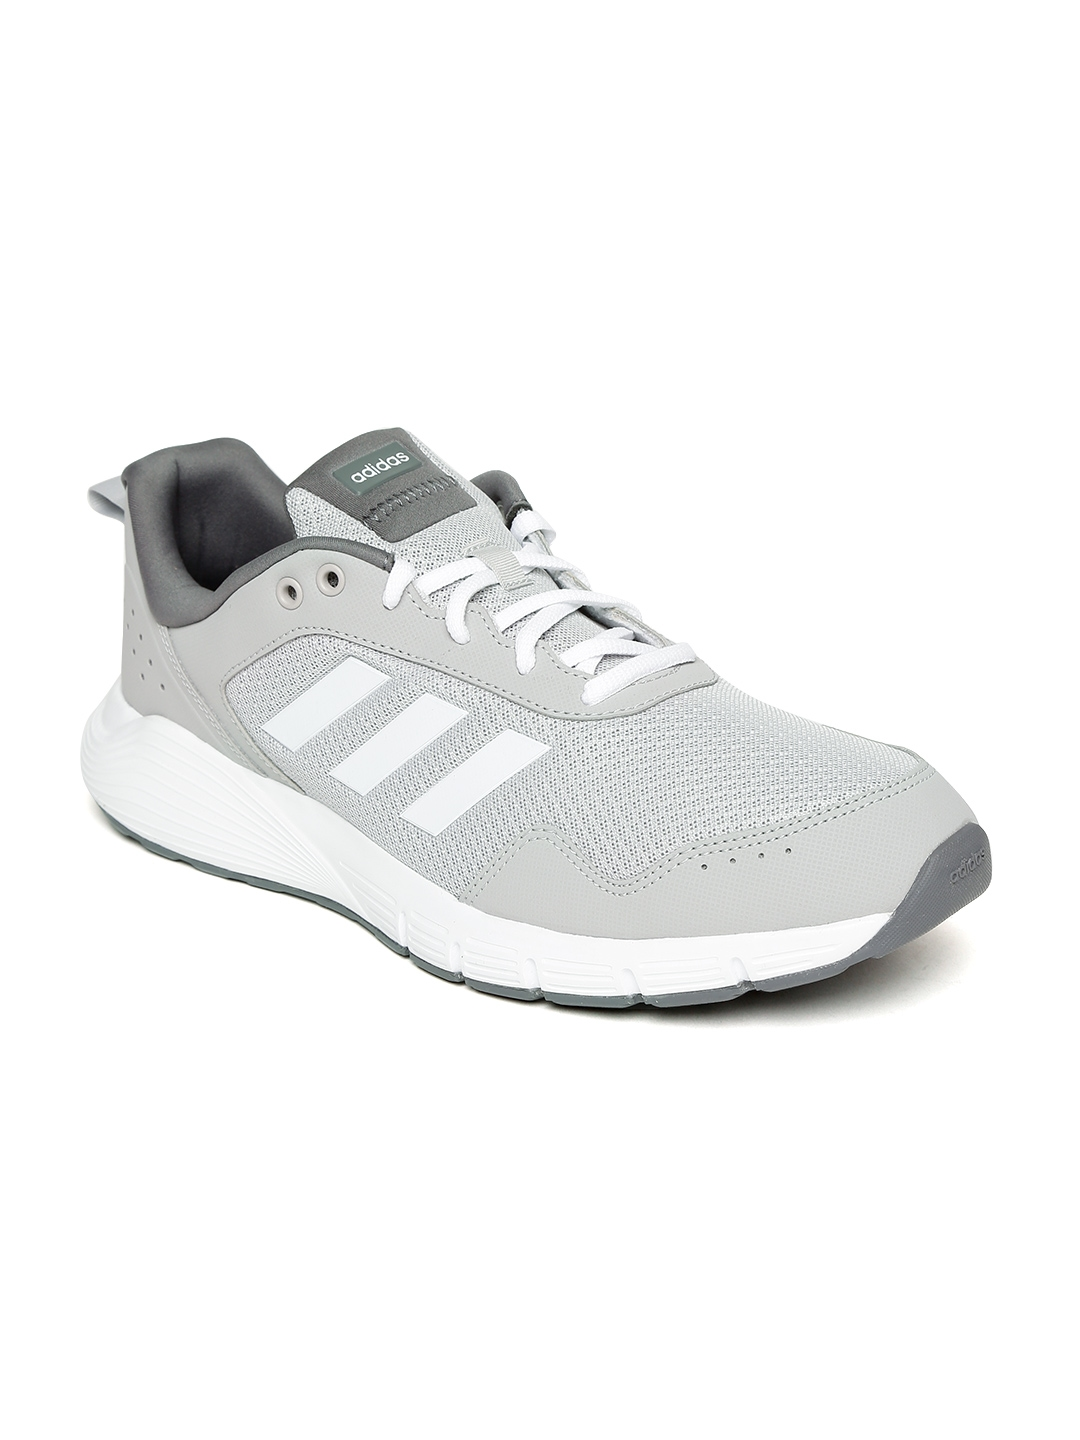 907f5a5e2 Buy Adidas Men Grey FluidCloud Neutral Running Shoes - Sports Shoes ...